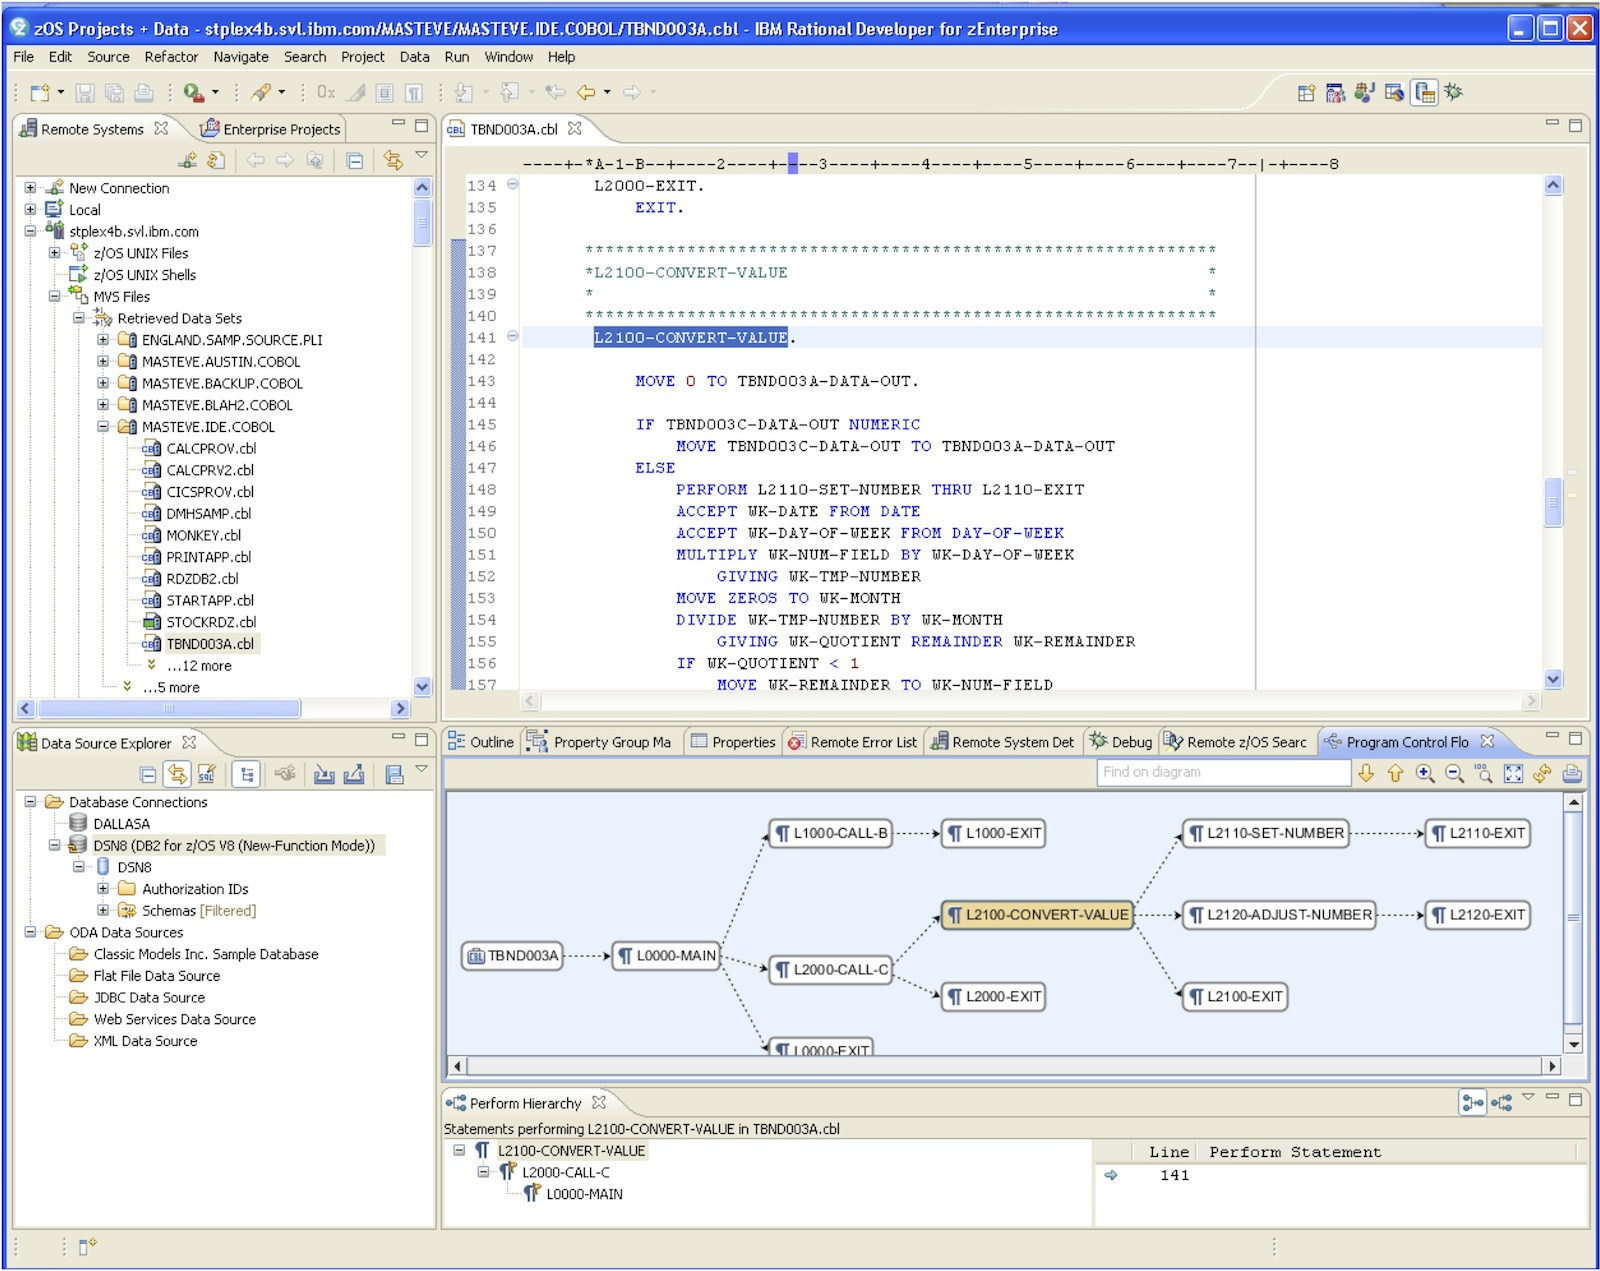 Image of the Rational Developer for System z IDE UI